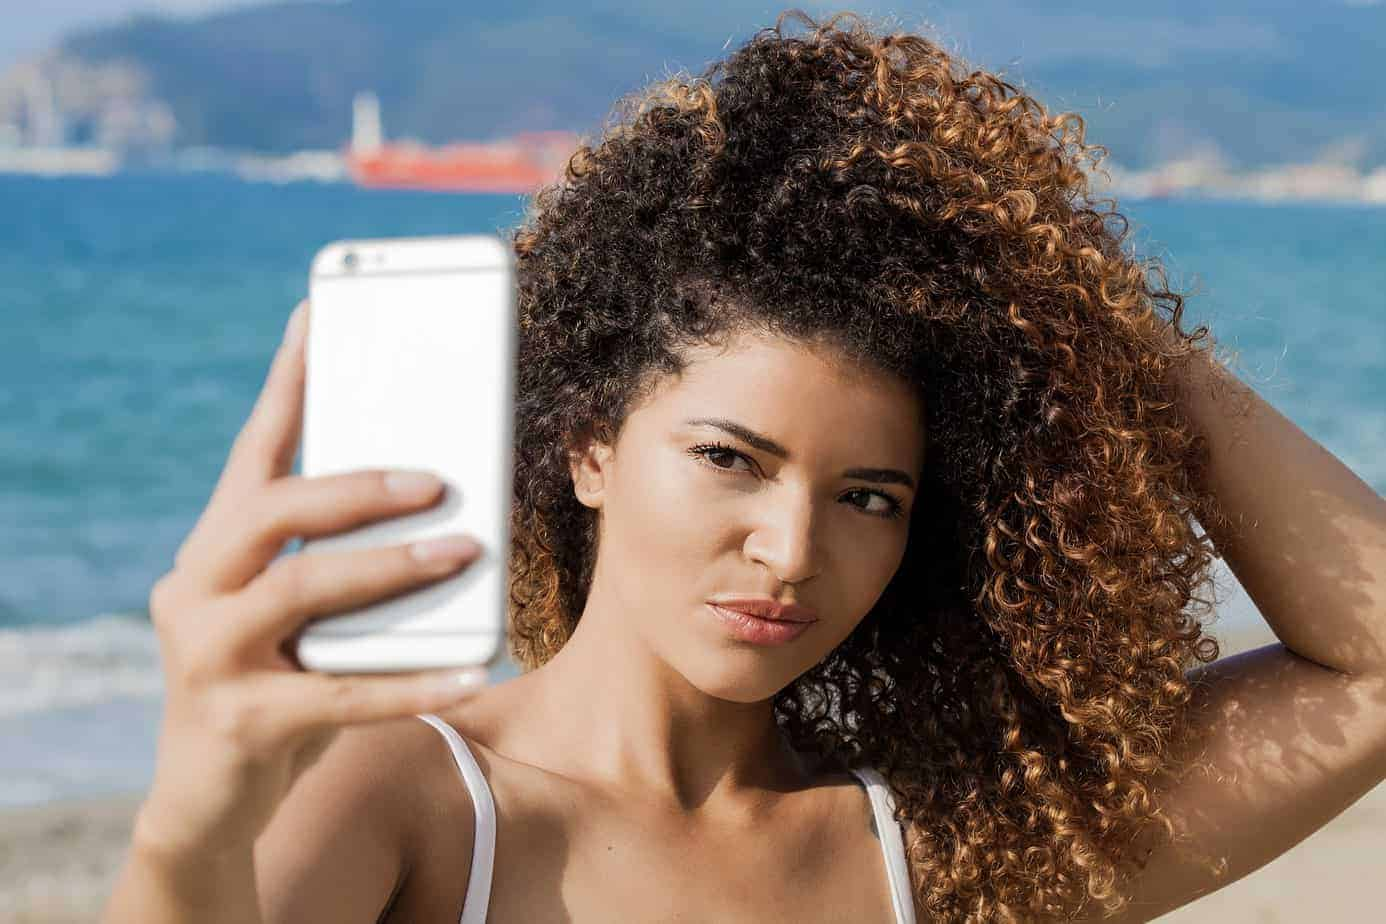 Young, cute woman taking a selfie on the beach with her iPhone after moisturizing her hair with lavender essential oil.